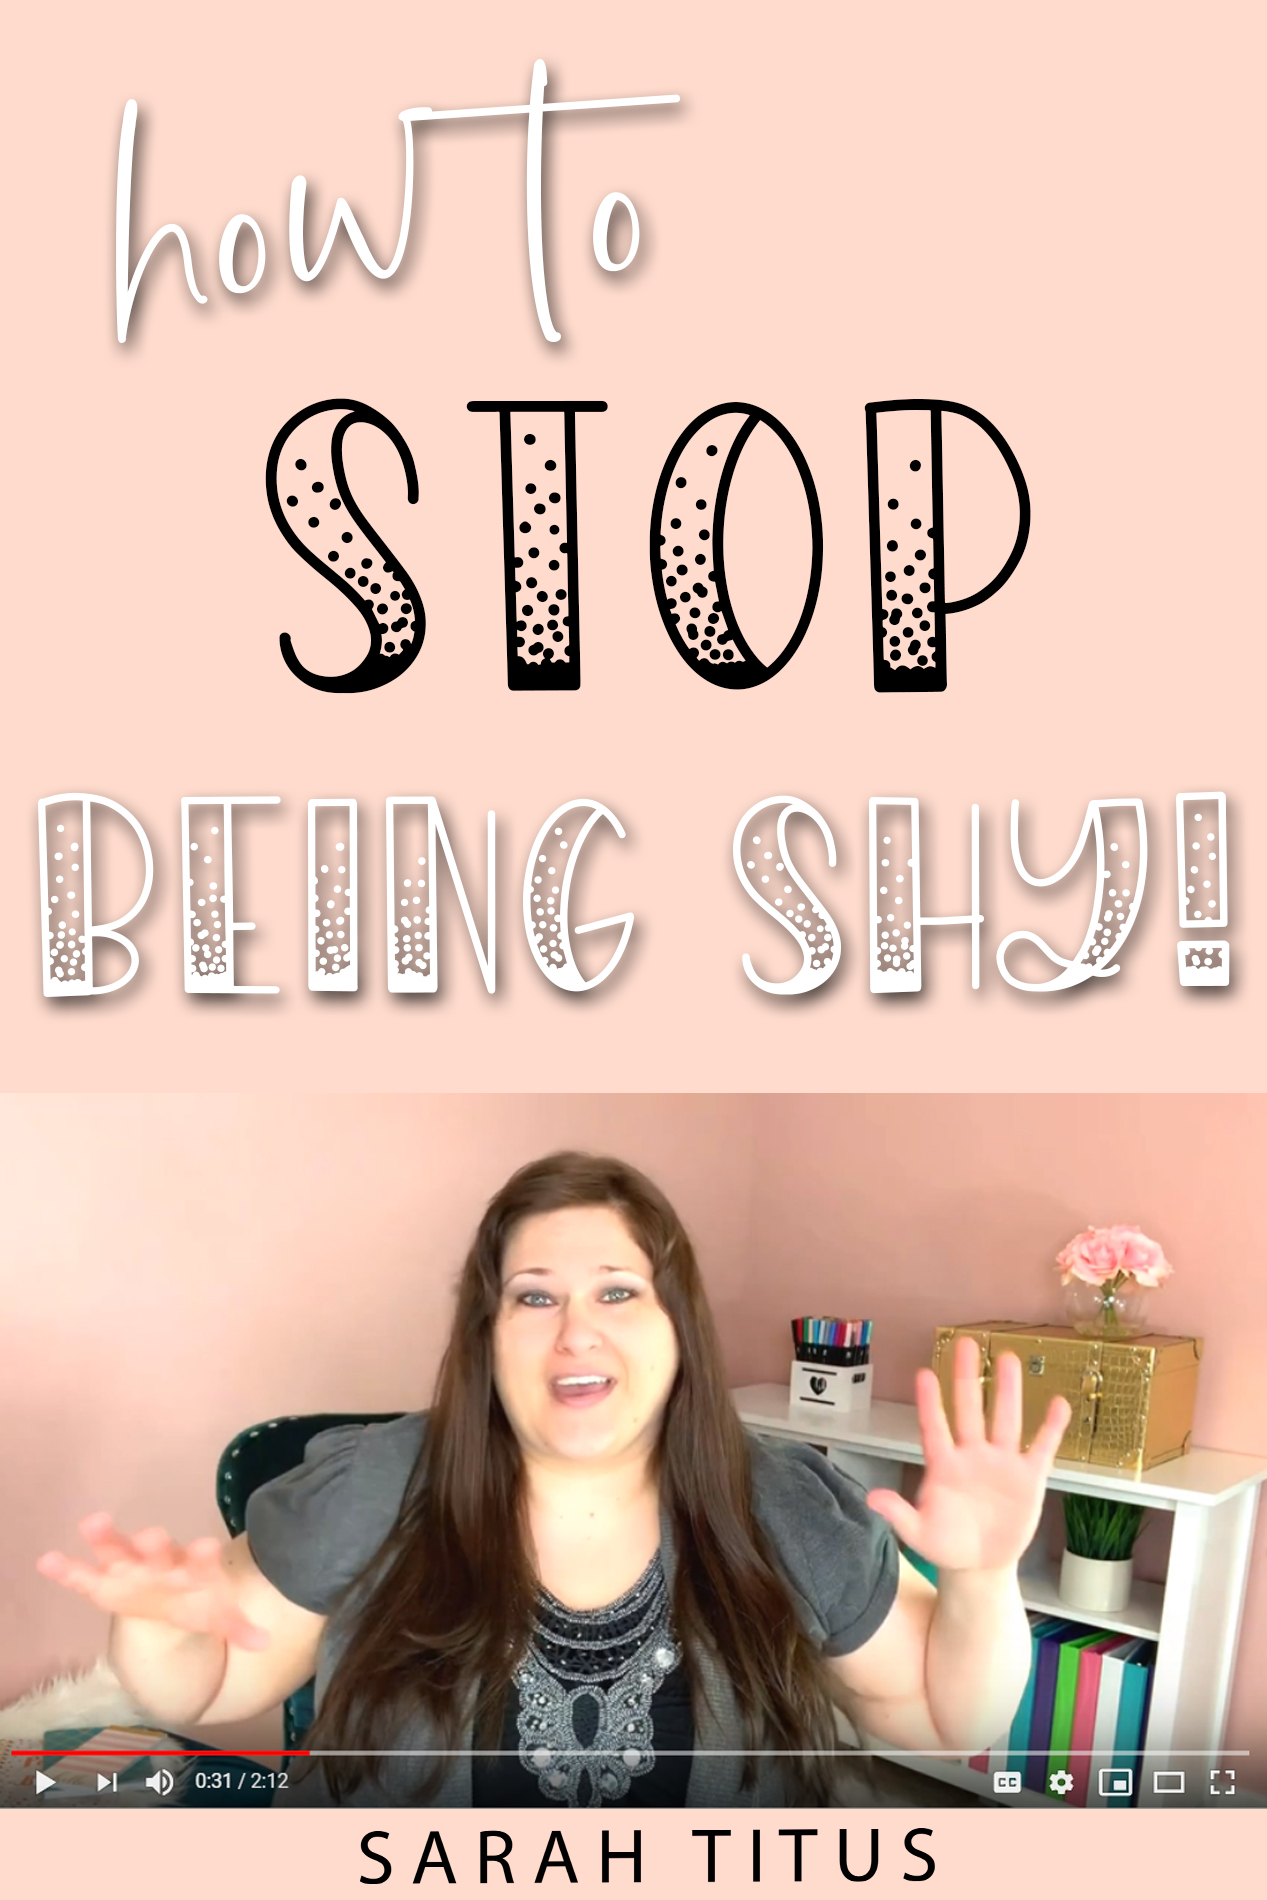 Online I'm just fine. It's no problem. The words come easily. I can talk just fine. But in person, it's a whole different story! Here's the #1 trick I use to help me stop being shy!